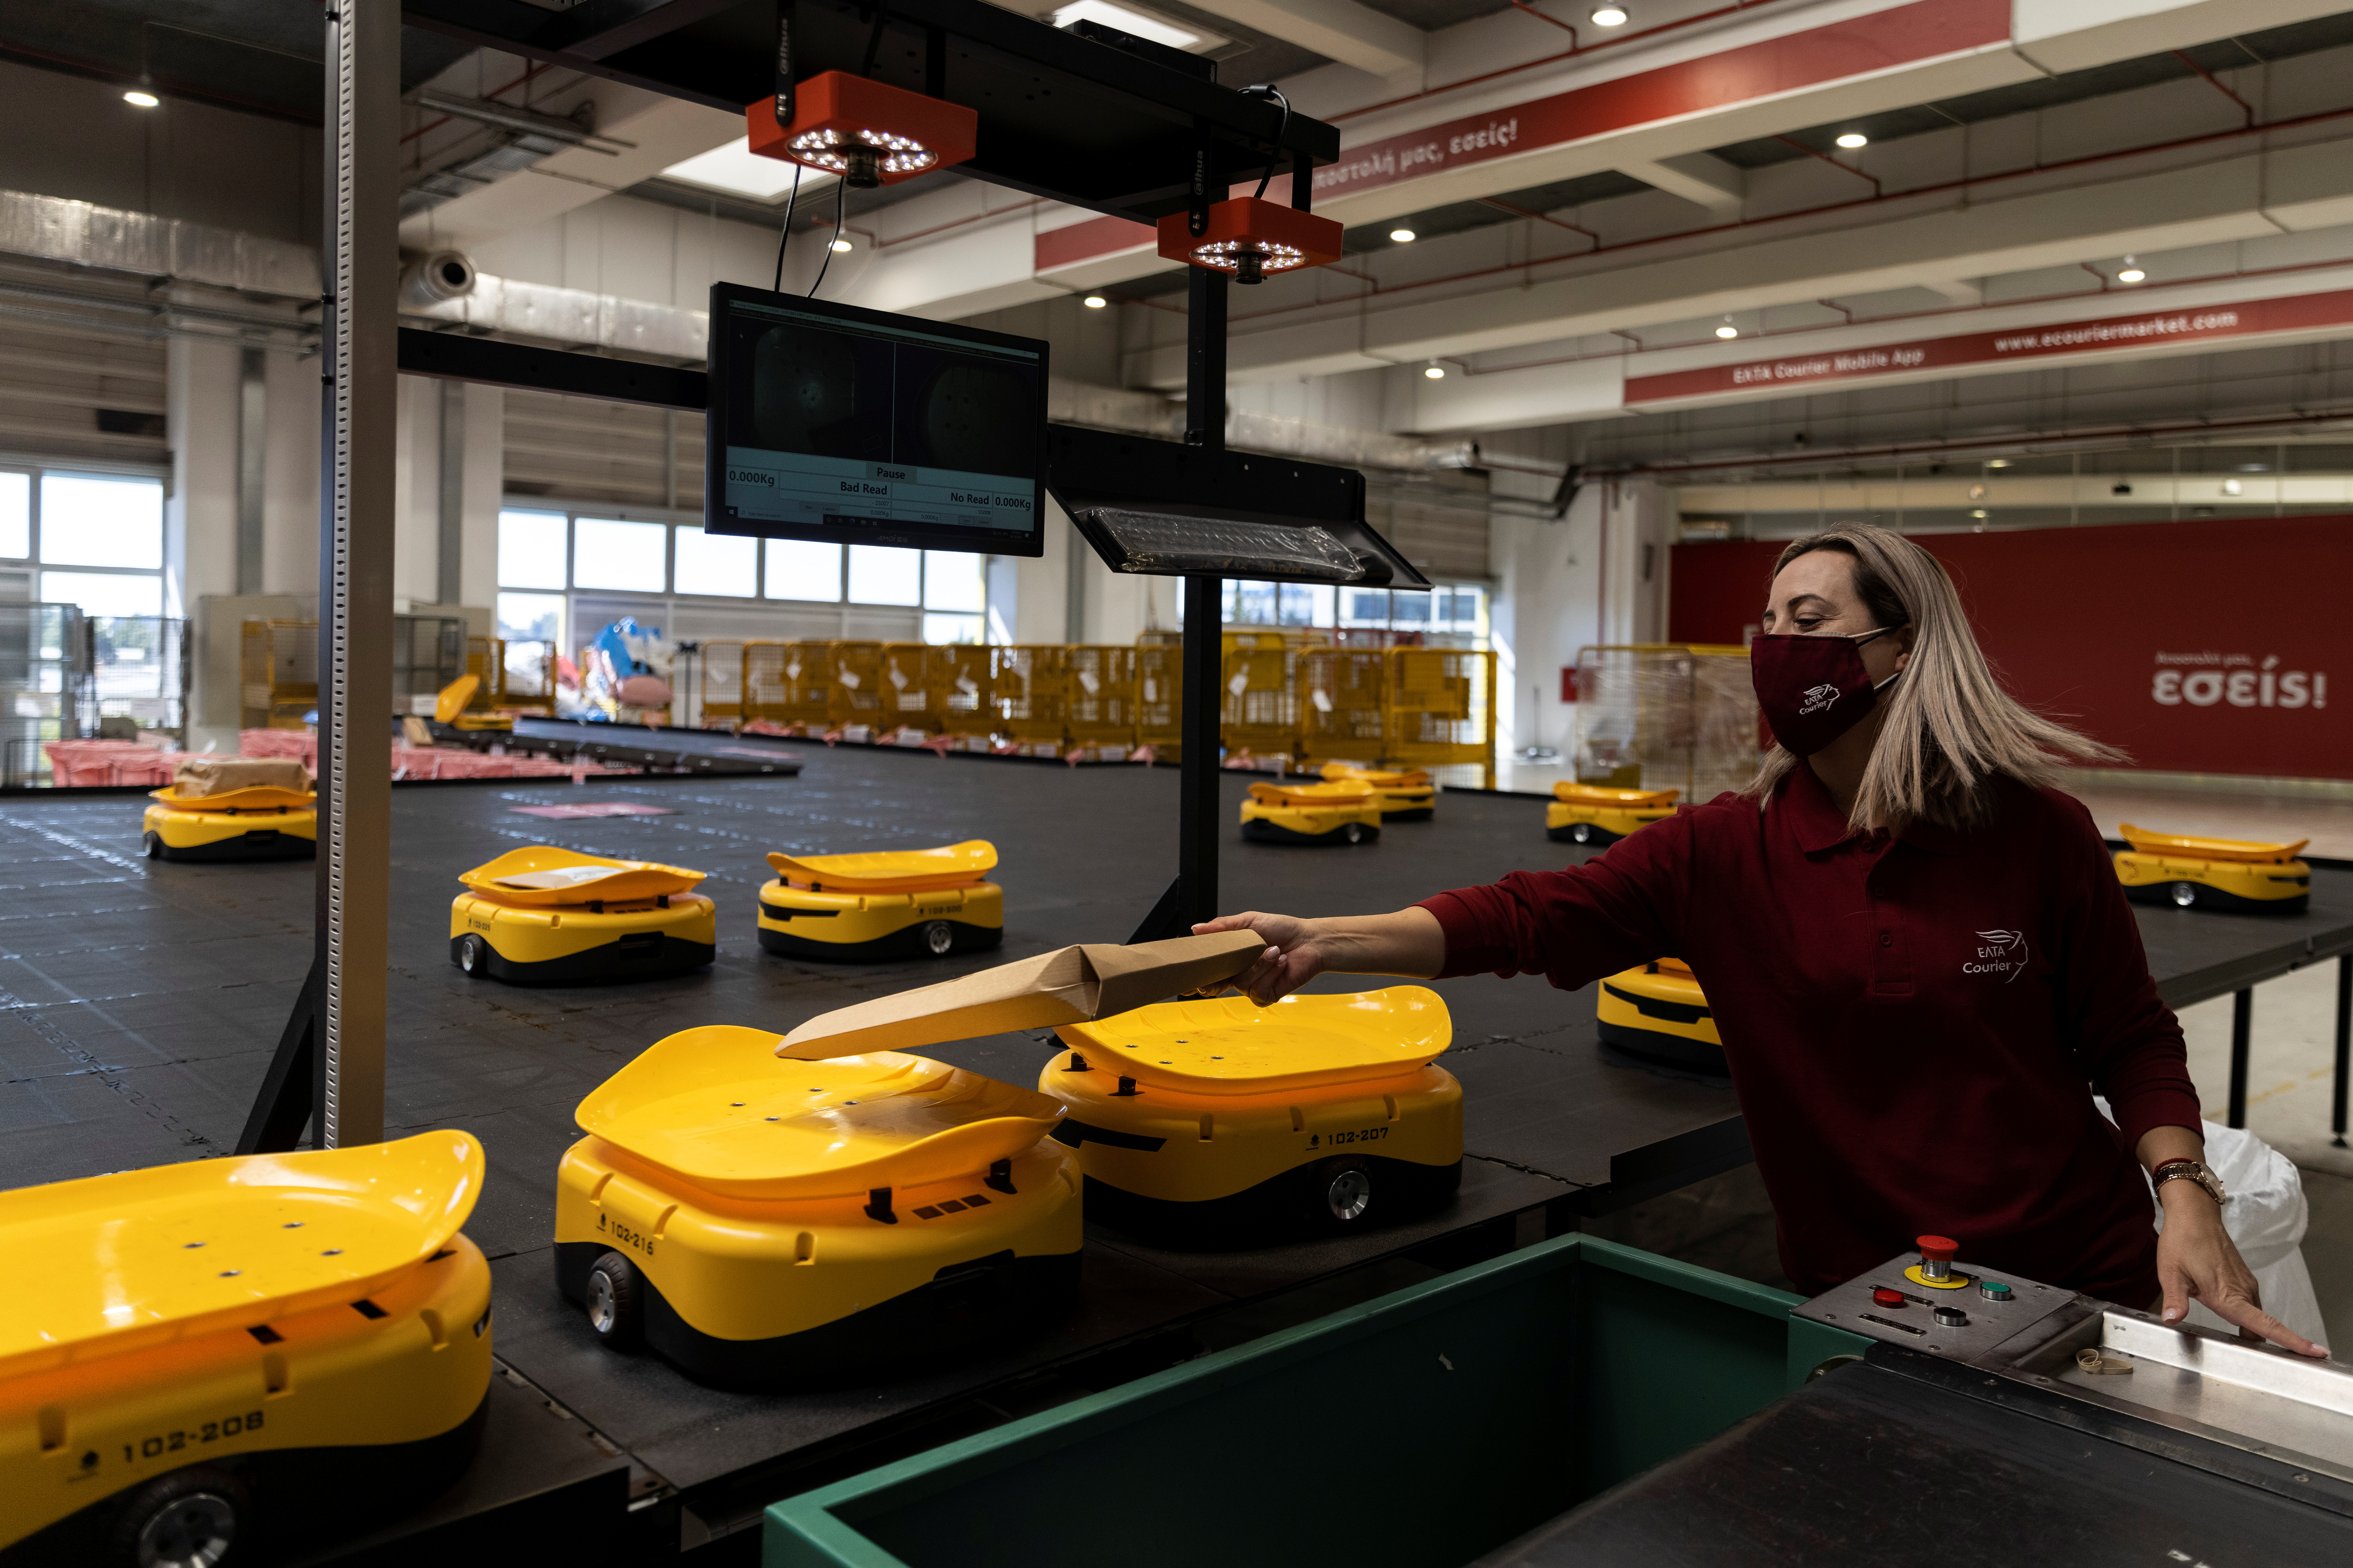 An employee places a parcel on a robot at the Hellenic Post's sorting centre in Kryoneri, Greece, October 4, 2021. Picture taken October 4, 2021. REUTERS/Alkis Konstantinidis